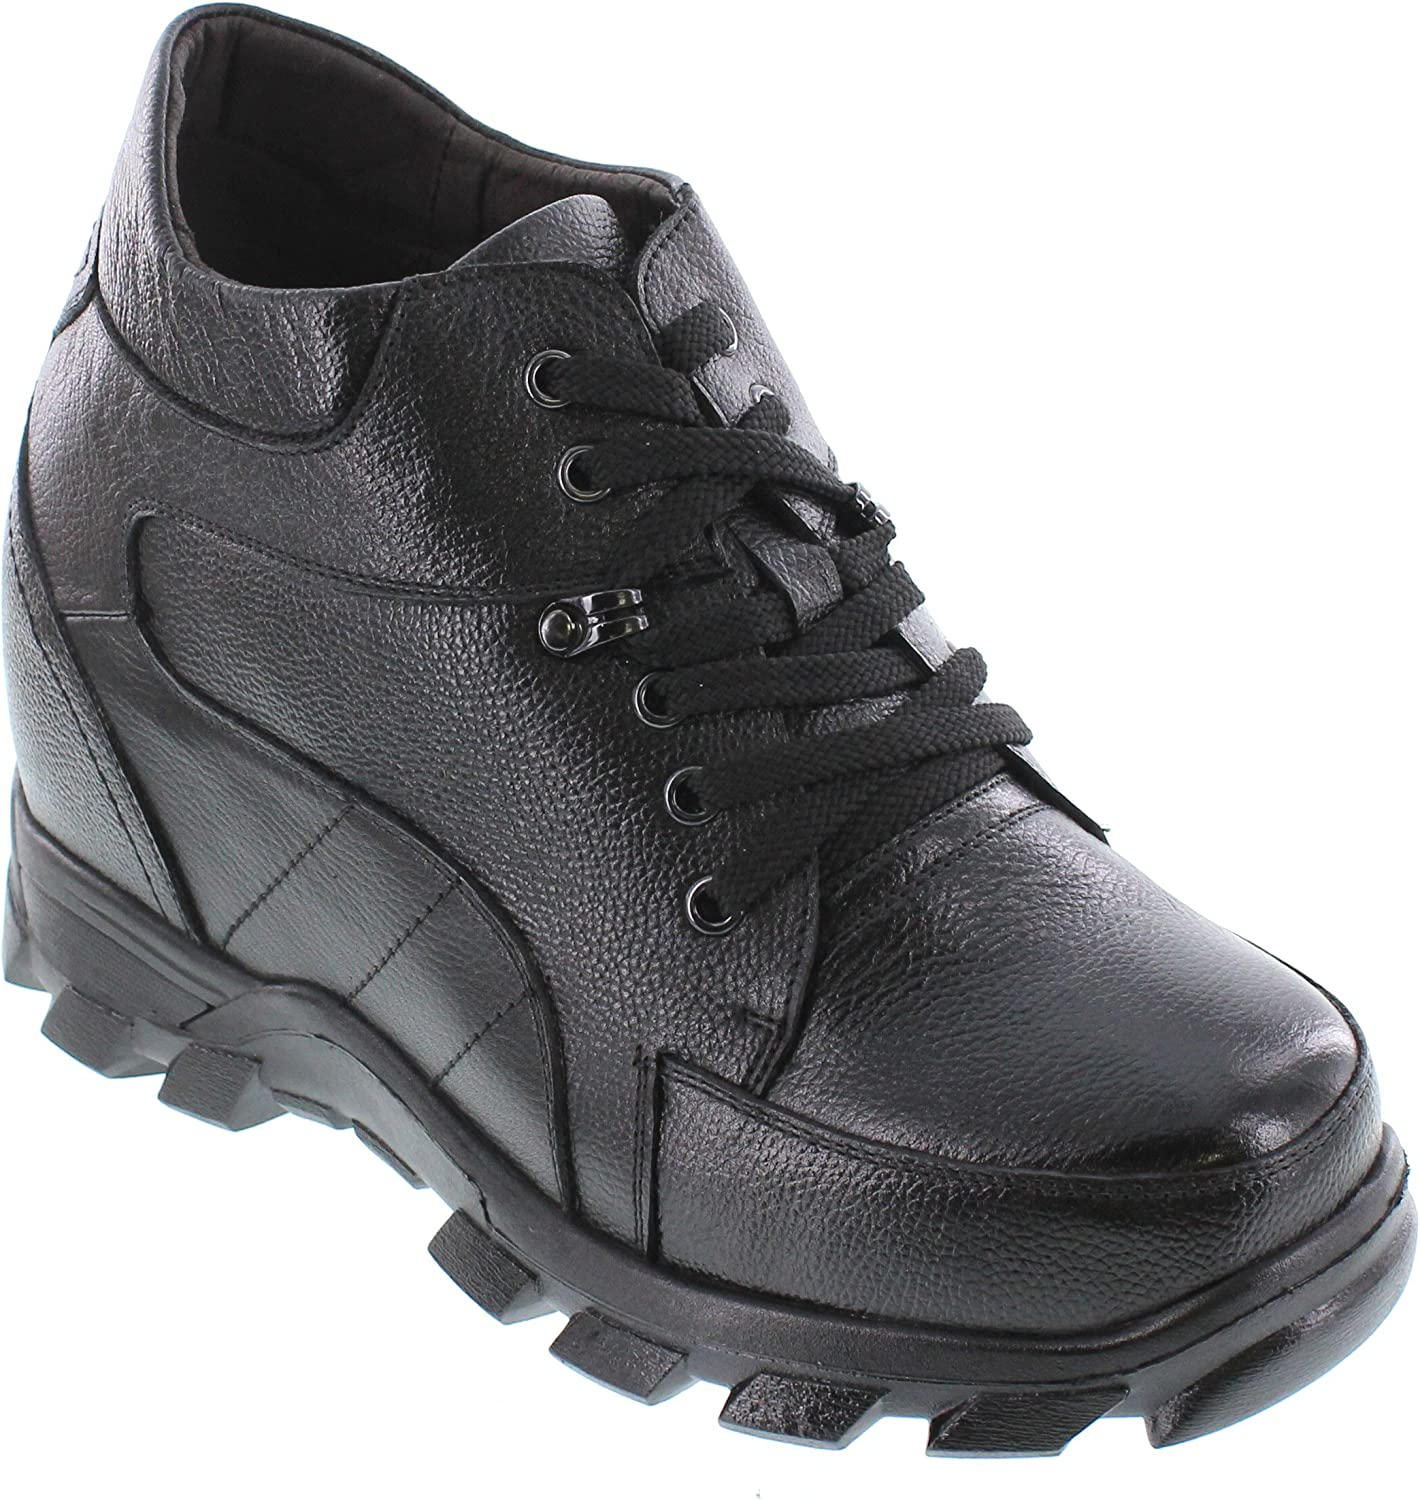 CALDEN - K107216 - 5.2 Inches Taller - Height Increasing Elevator shoes-Black Lace up Boot